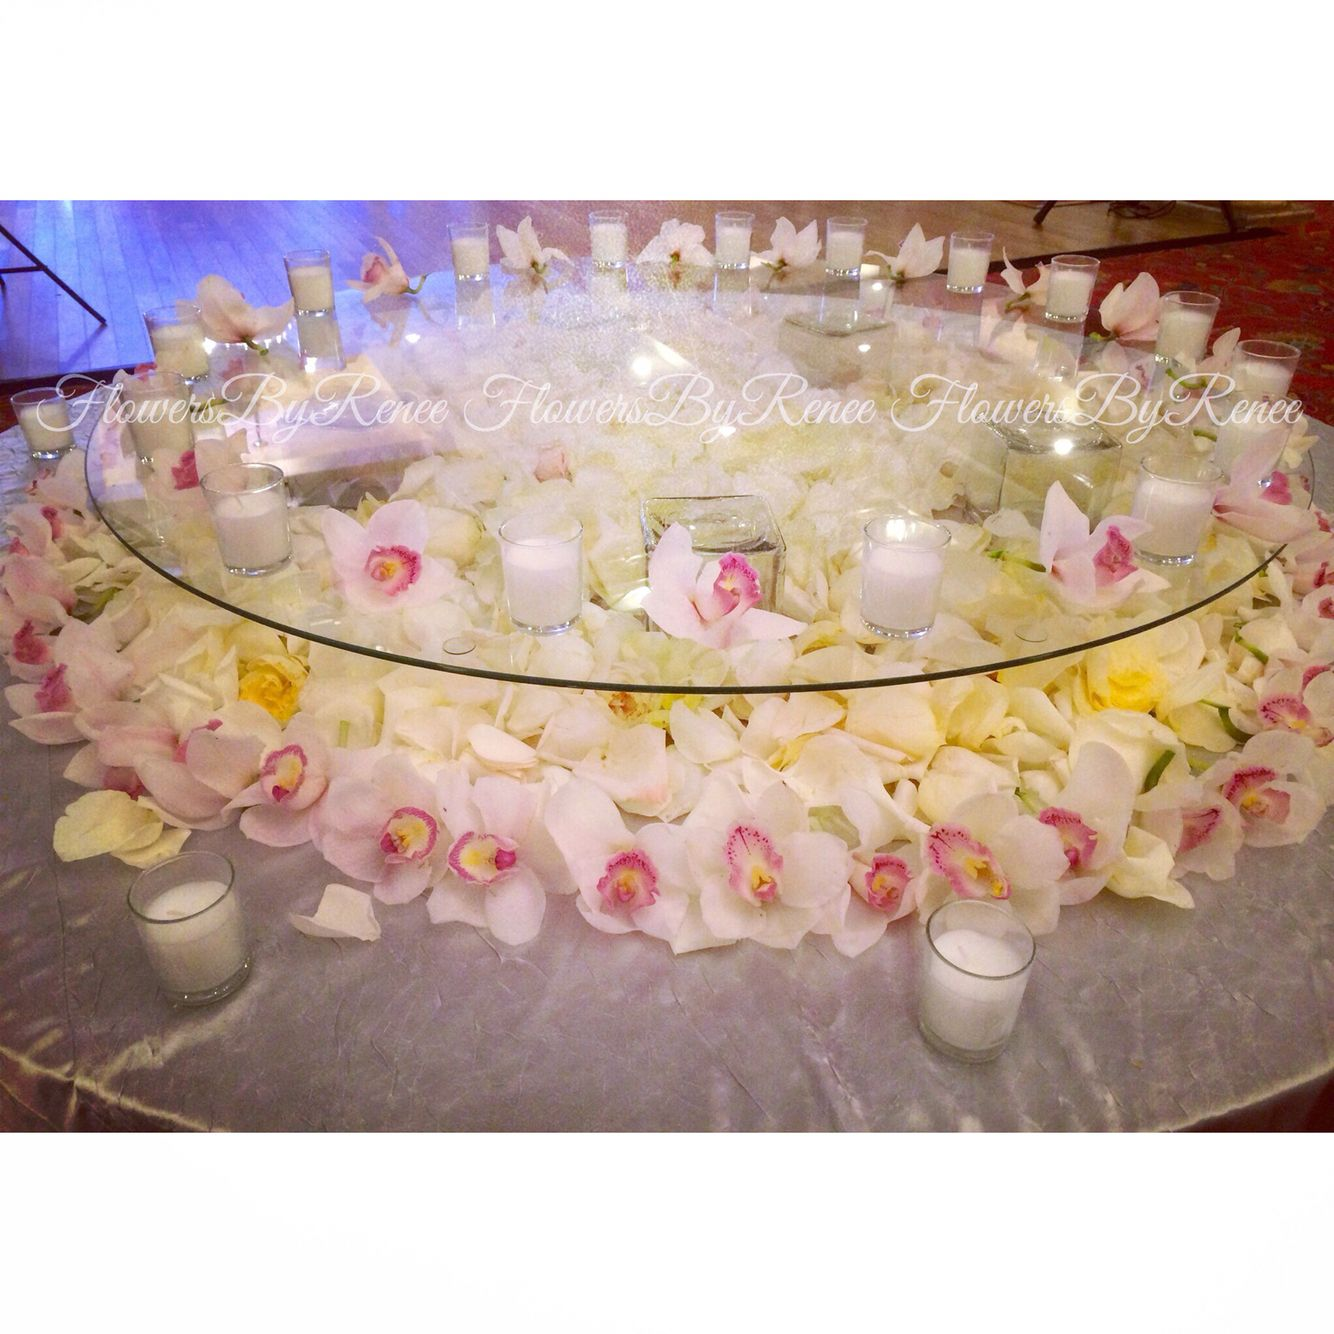 Cake Table Decorated With Orchids Rose Petals And Candles Rose Petals Cake Table Wedding